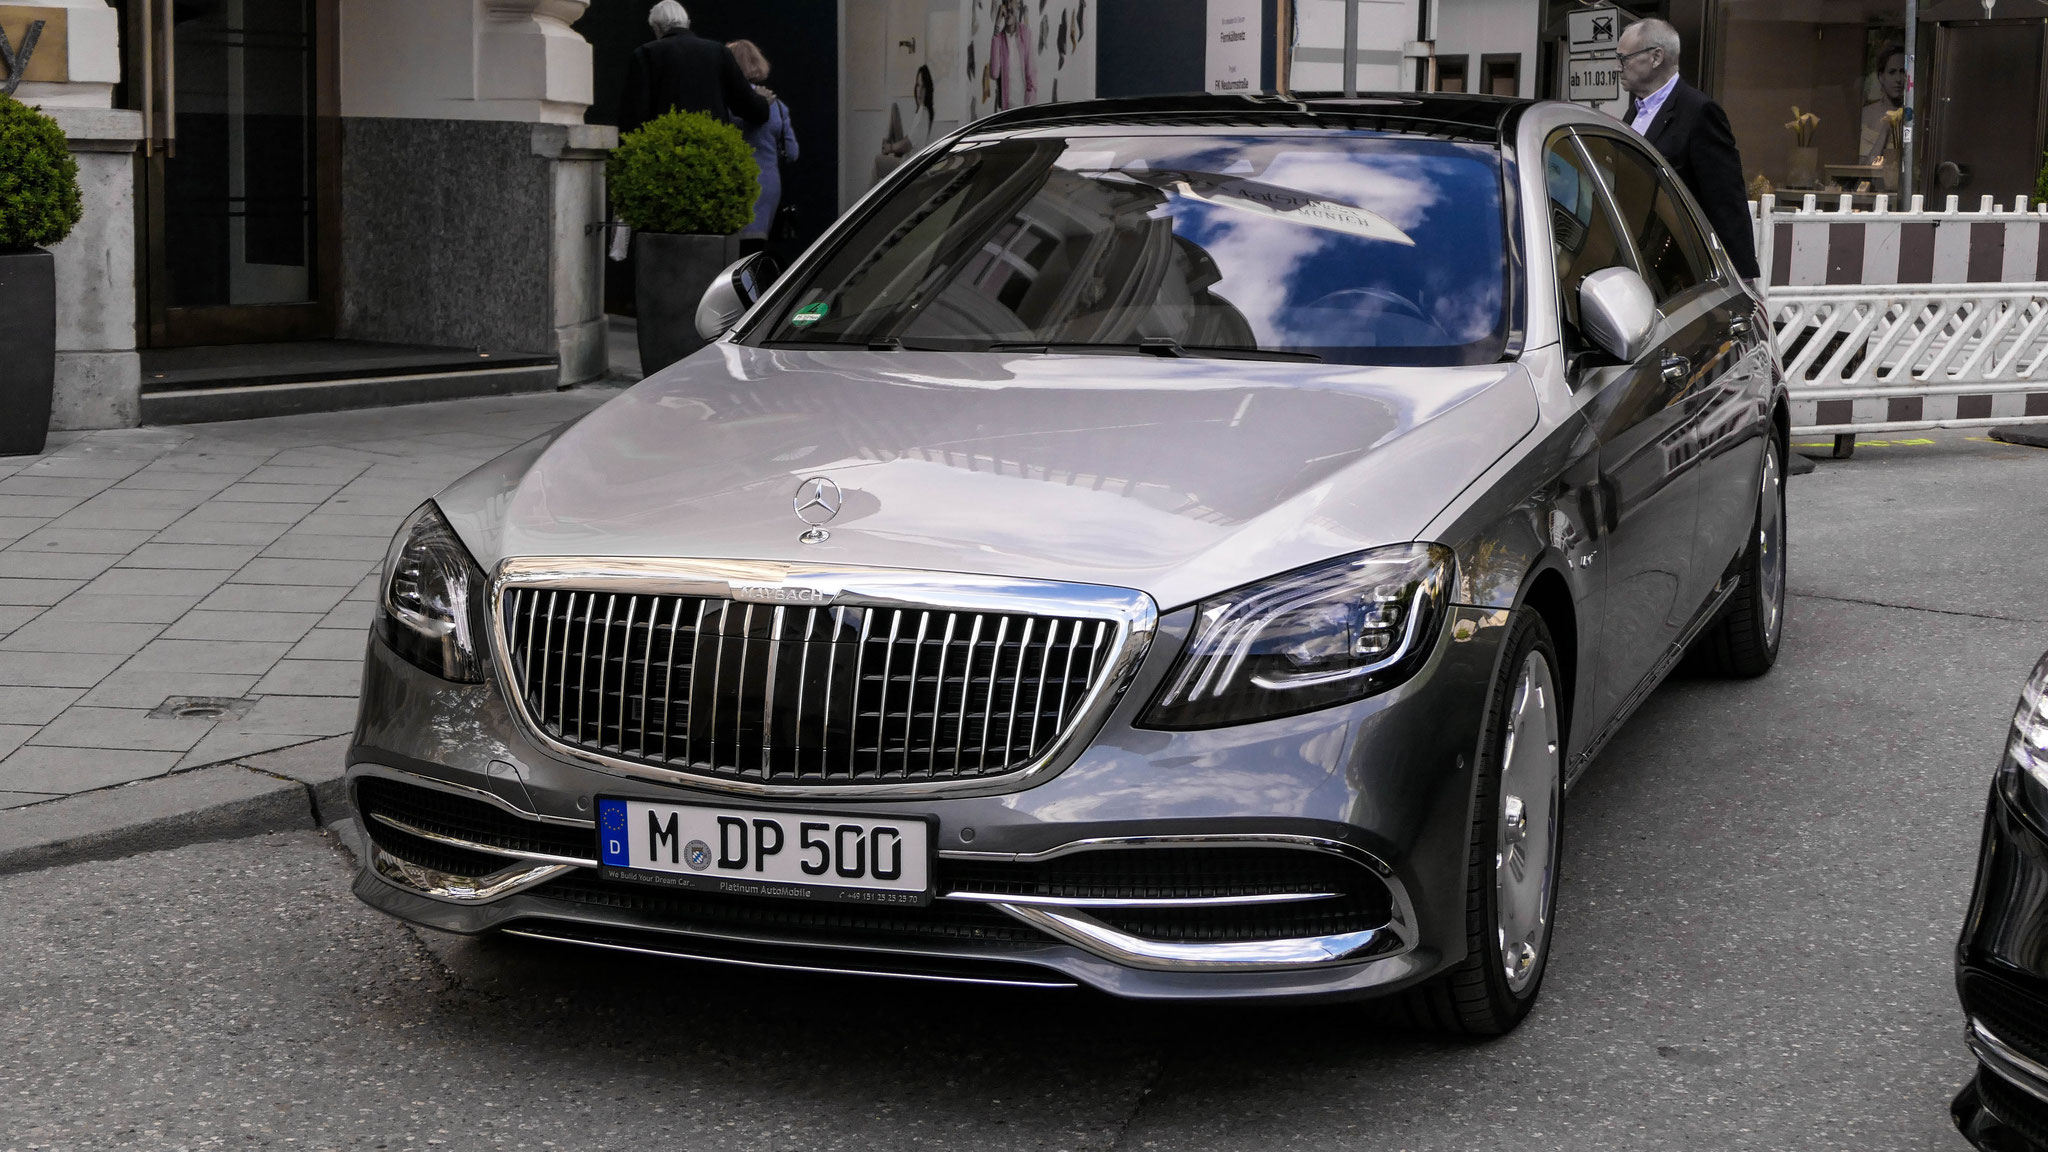 Mercedes Maybach S560 - M-DP-500